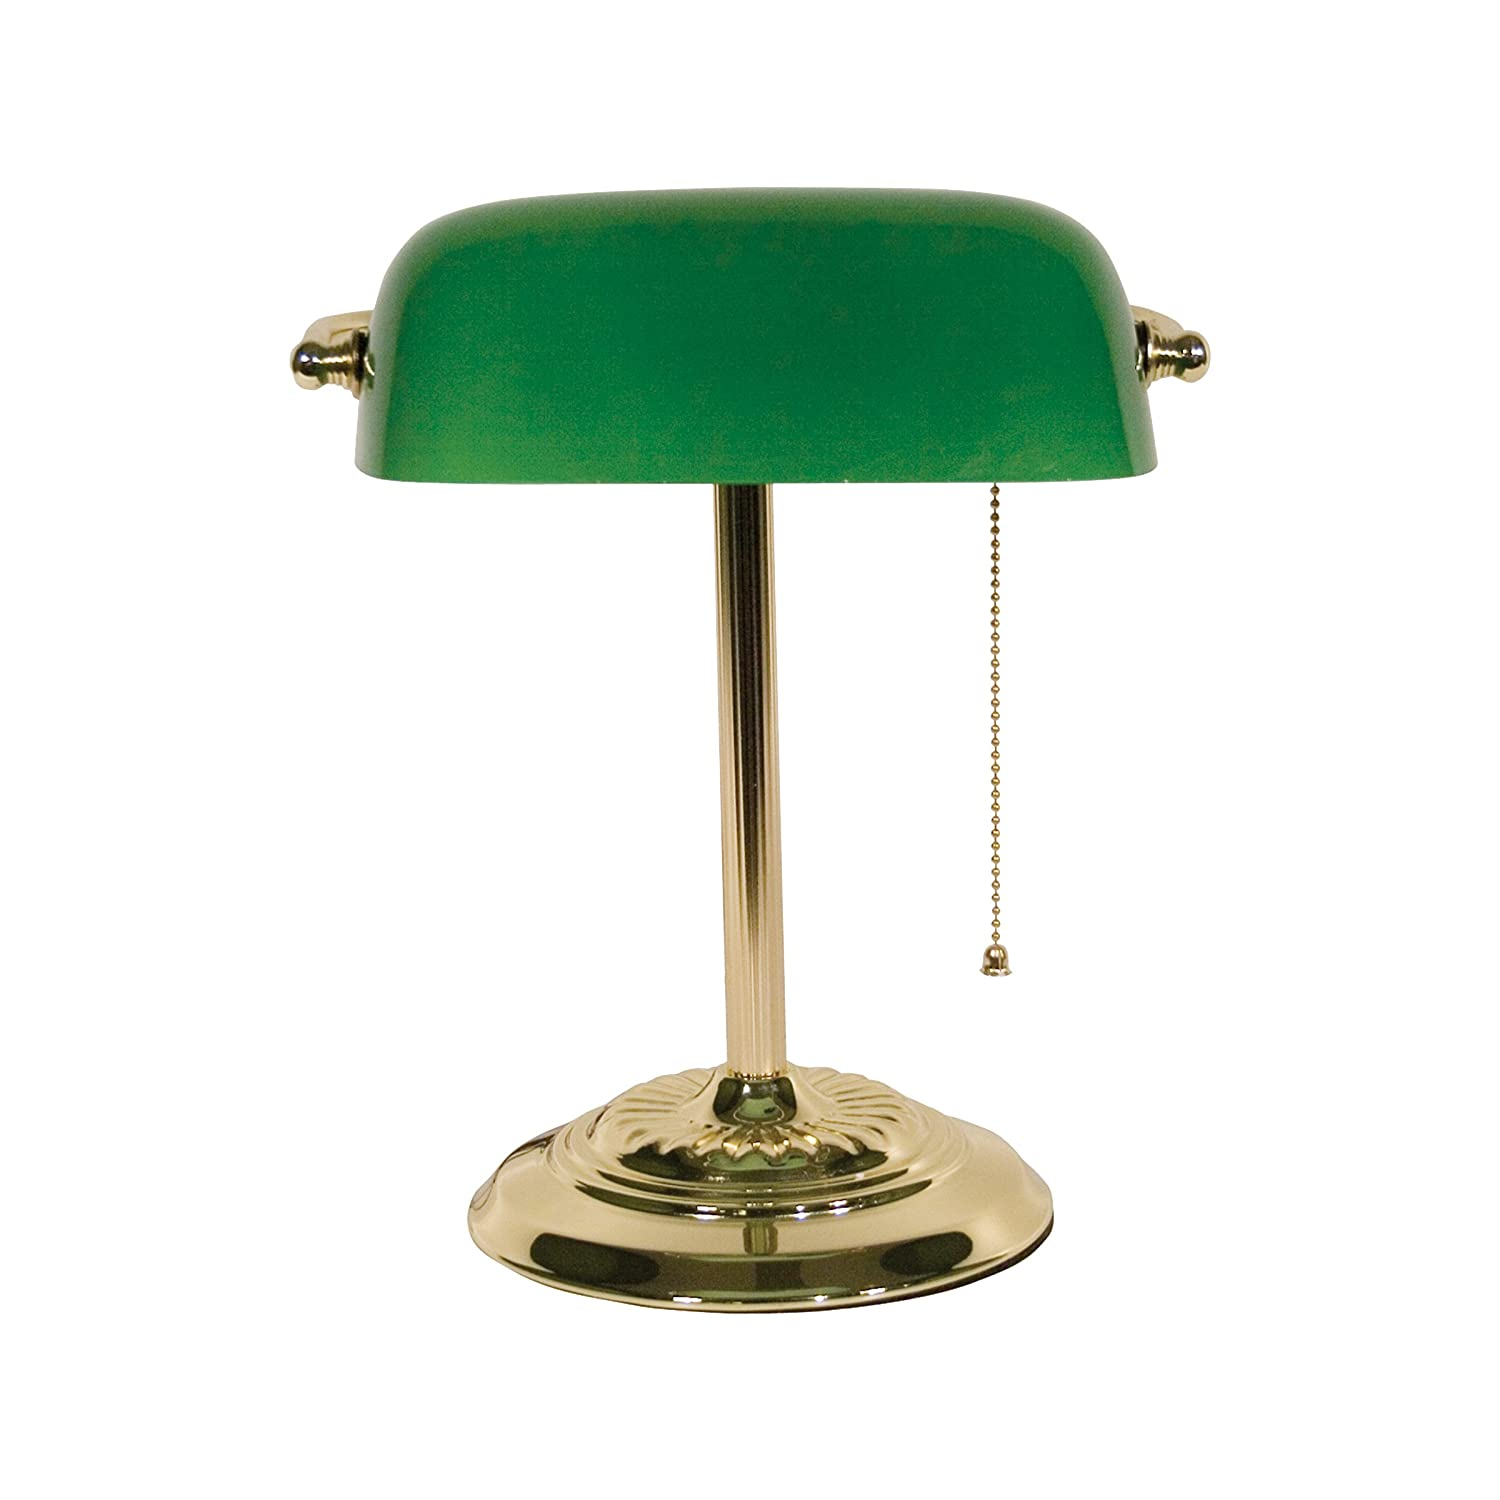 antique desk lamp green glass shade antique furniture. Black Bedroom Furniture Sets. Home Design Ideas